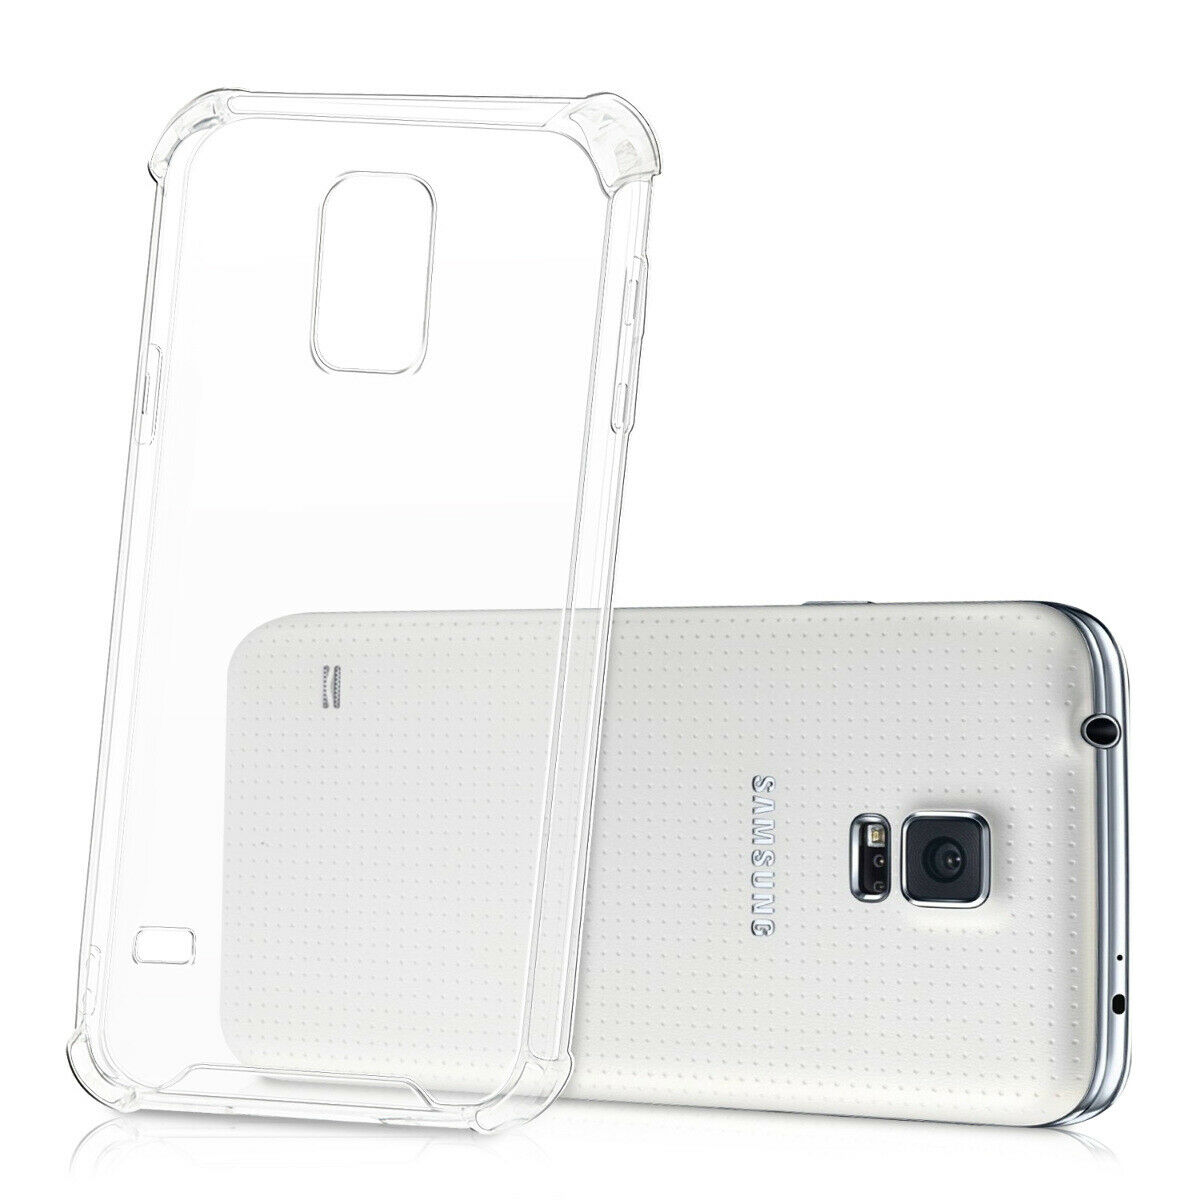 Samsung Galaxy S5 Airbag Case Anti Shock and Anti-Scratch Resistant Clear View Transparent Silicone Back Cover